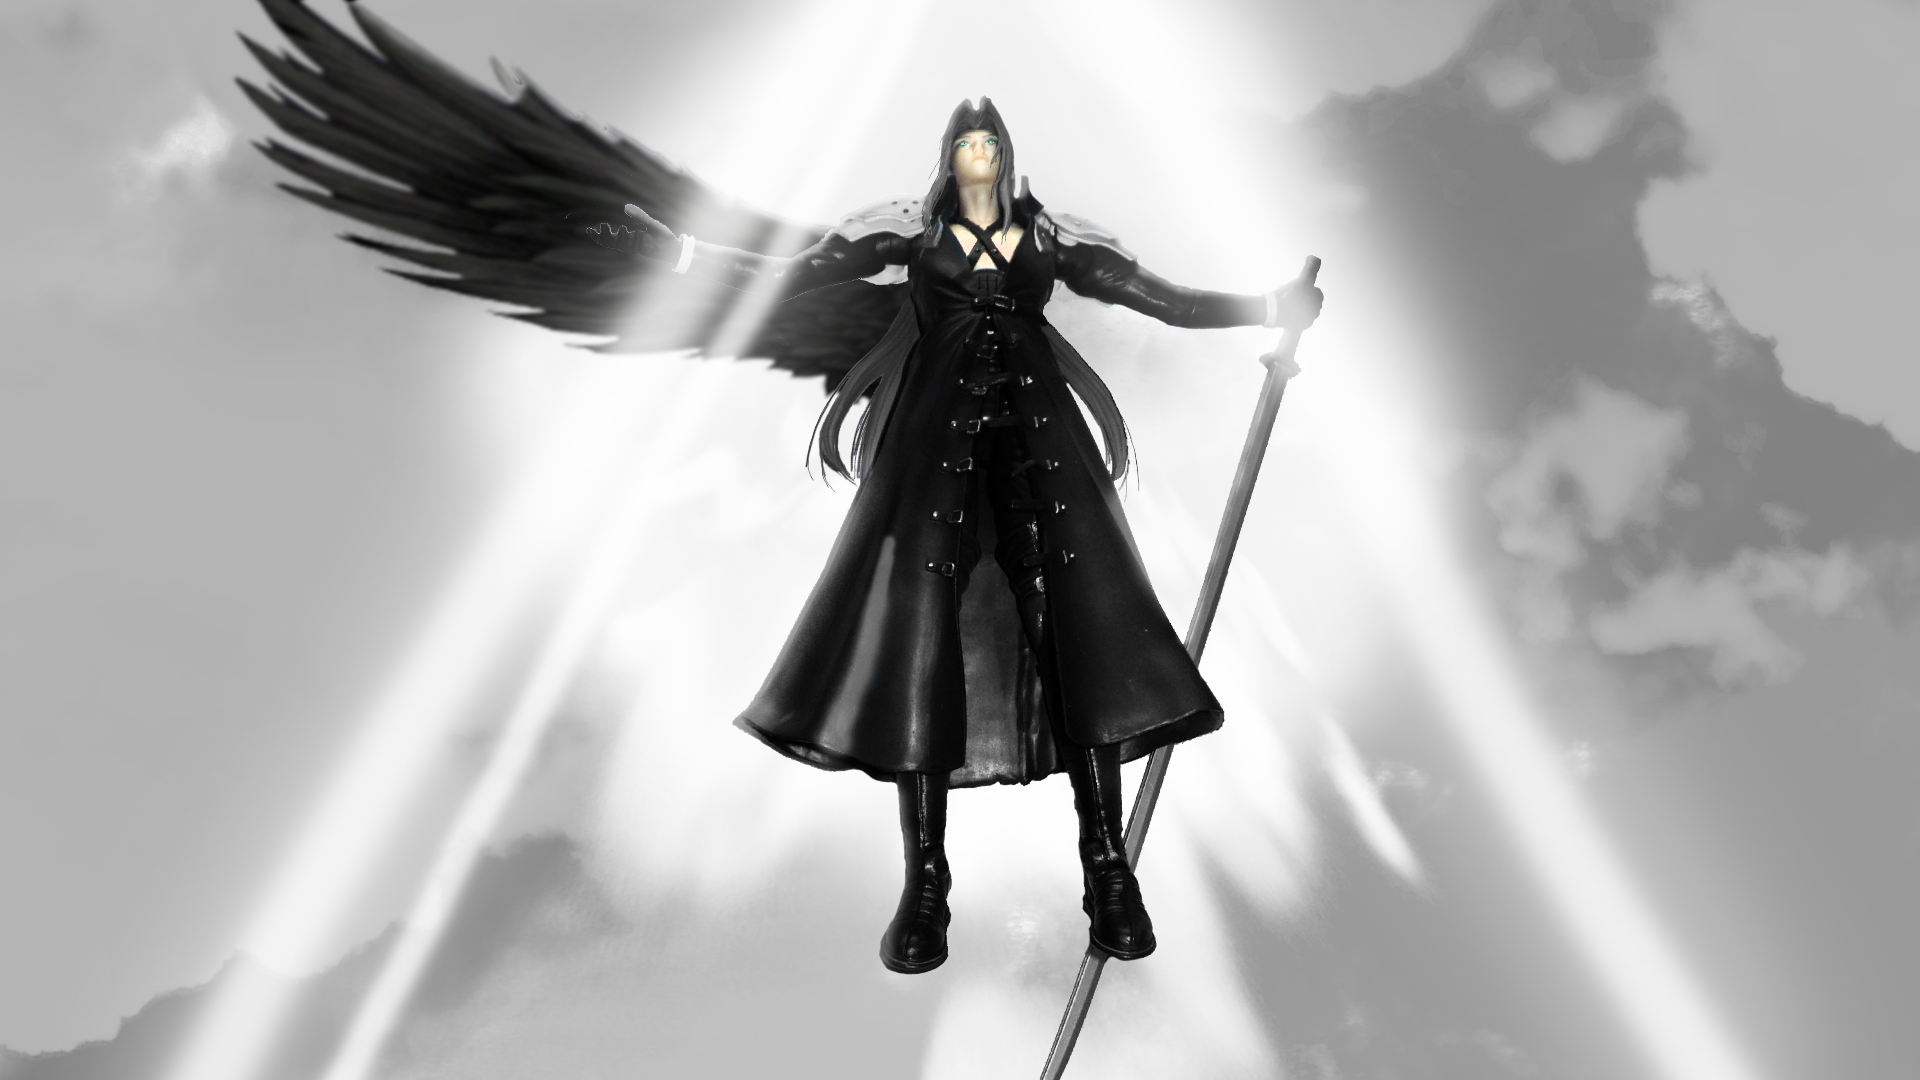 Sephiroth: The one Winged Angel by SEELE-1 on DeviantArt One Winged Angel Sephiroth